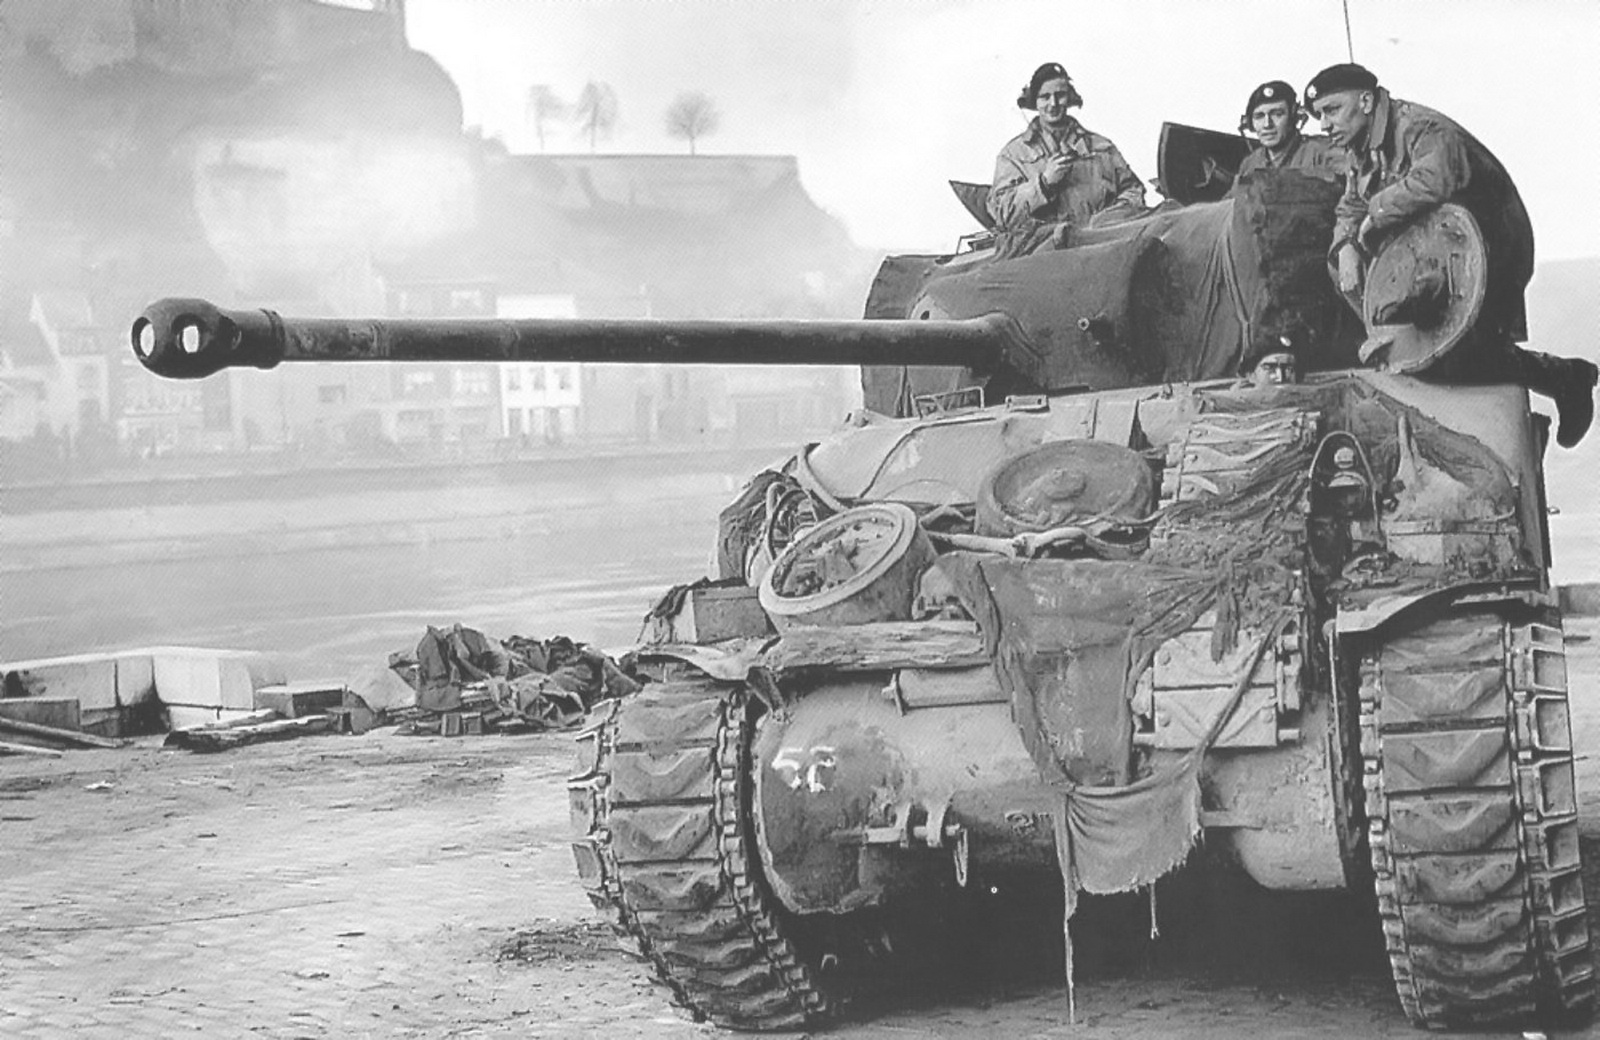 It was in a Sherman Firefly like this one in which Joe Ekins destroyed Wittmann's Tiger